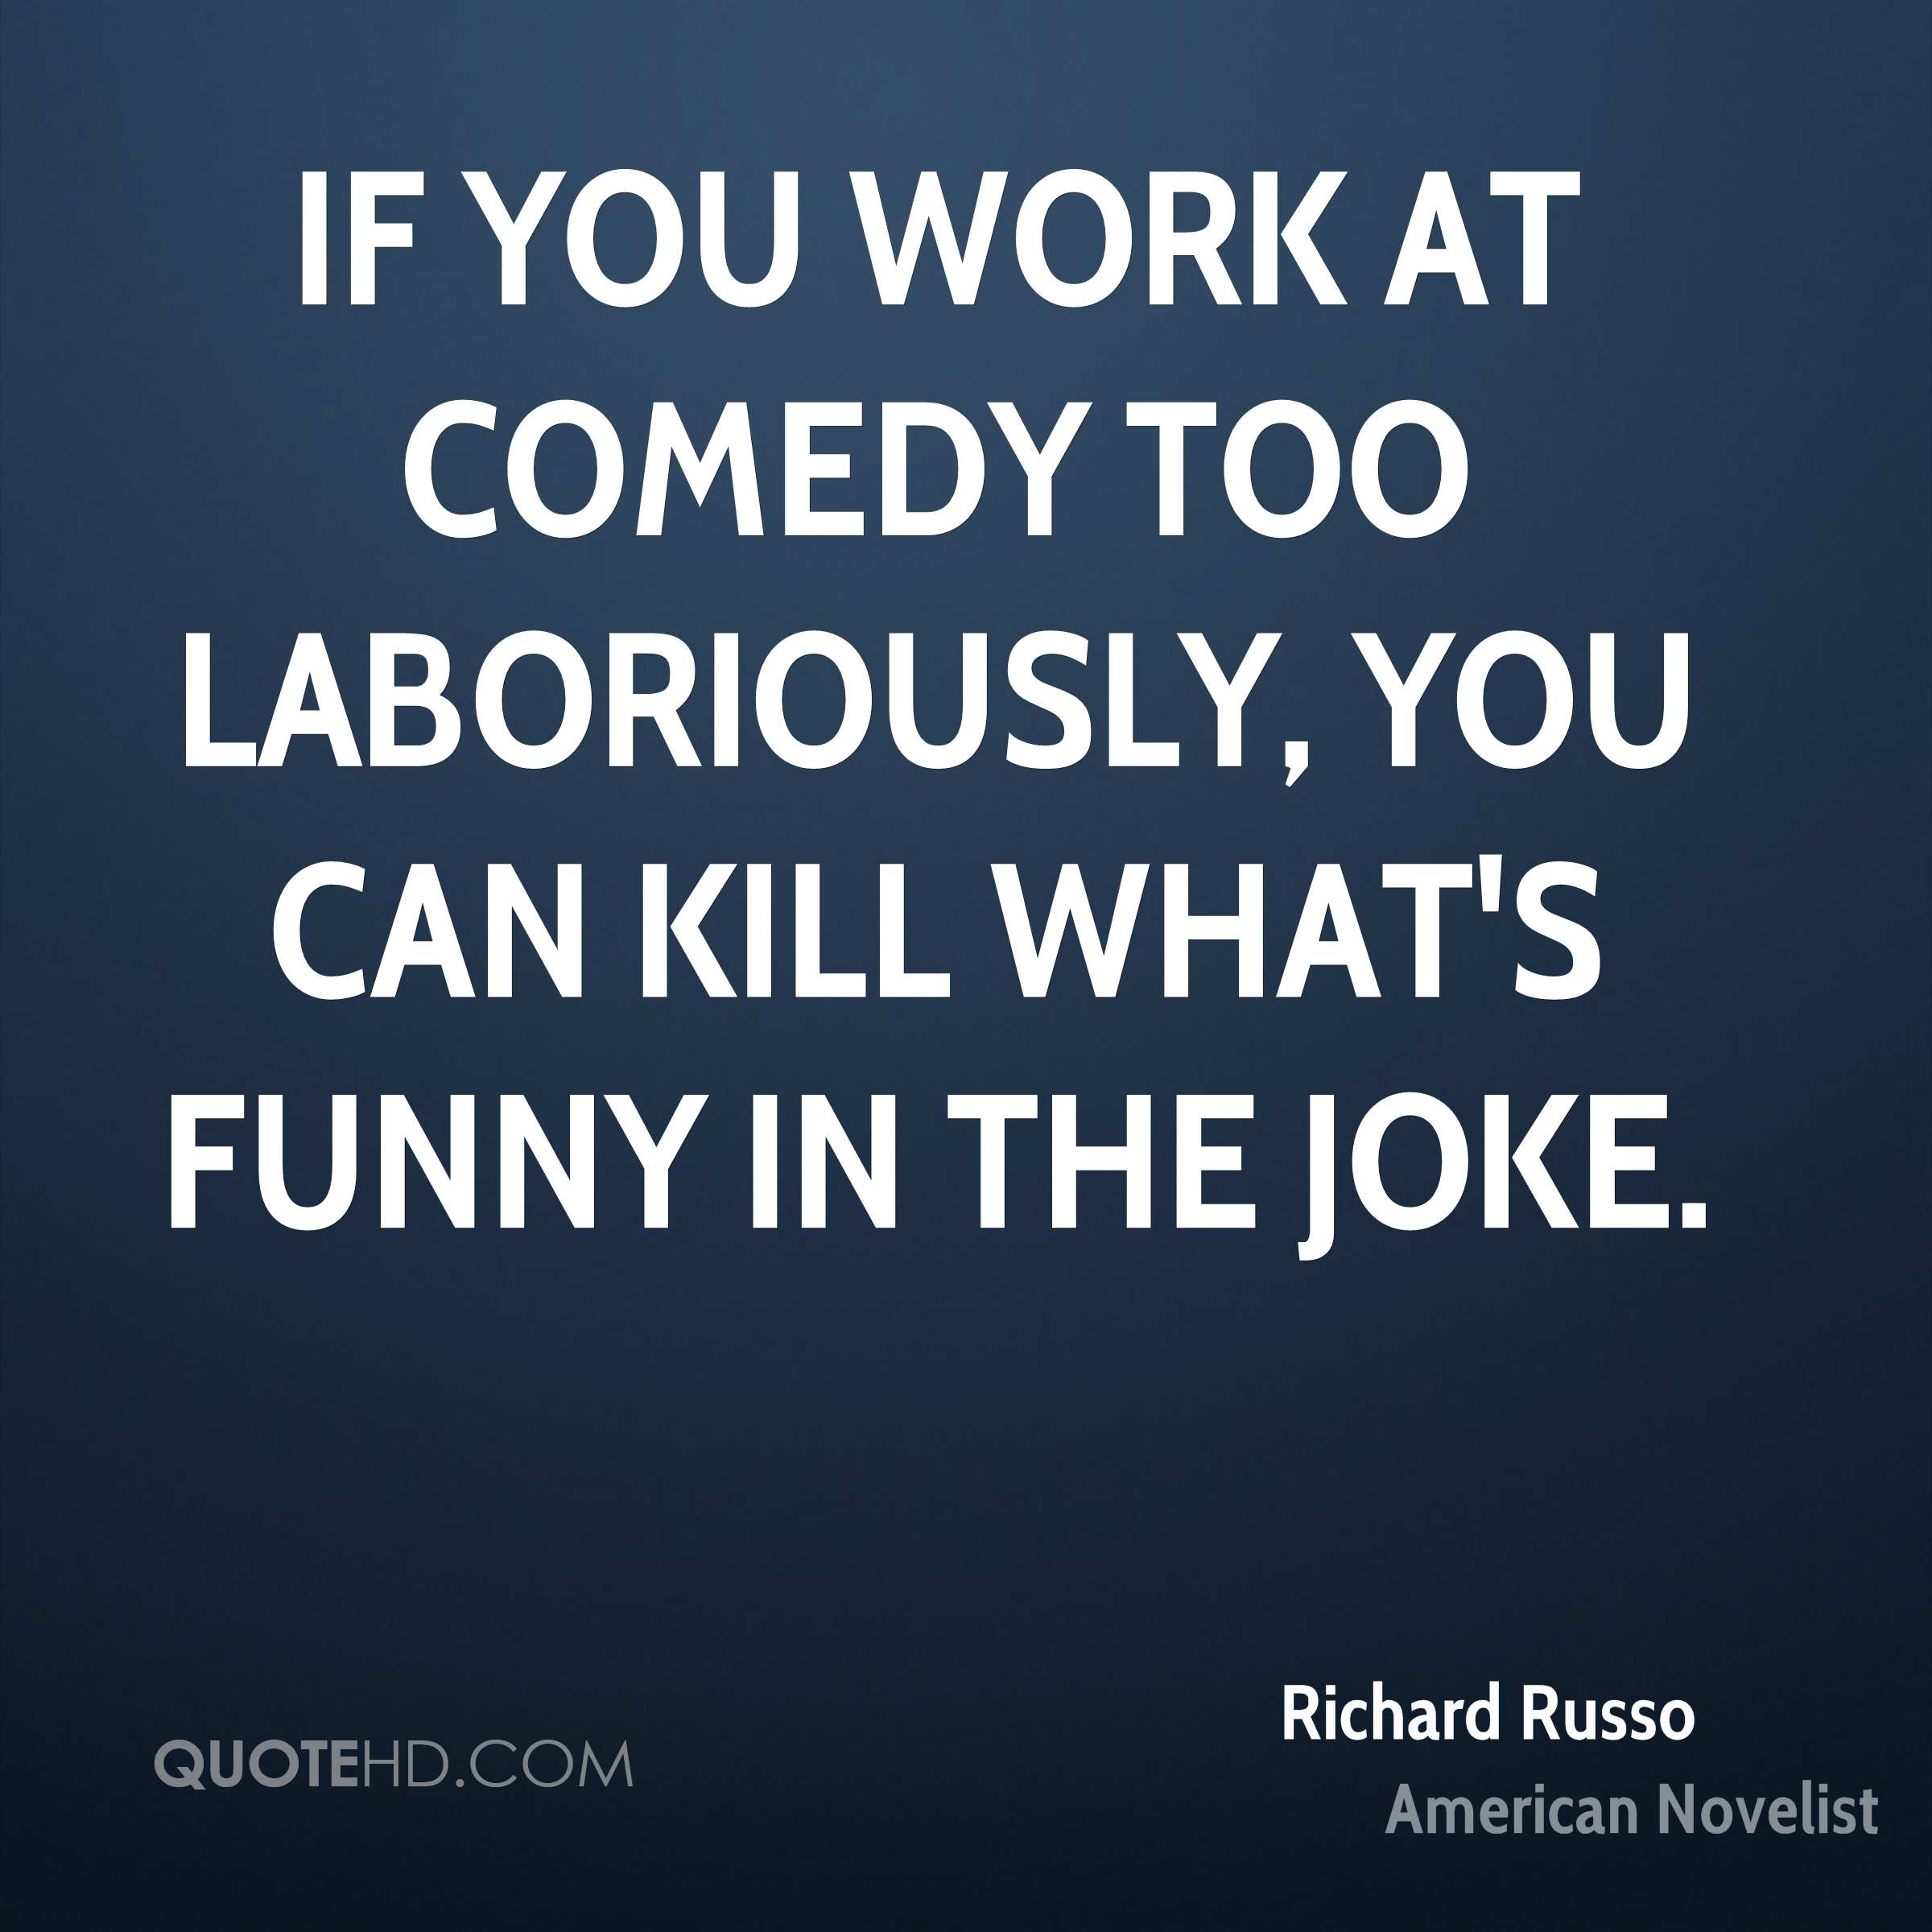 If you work at comedy too laboriously, you can kill what's funny in the joke.